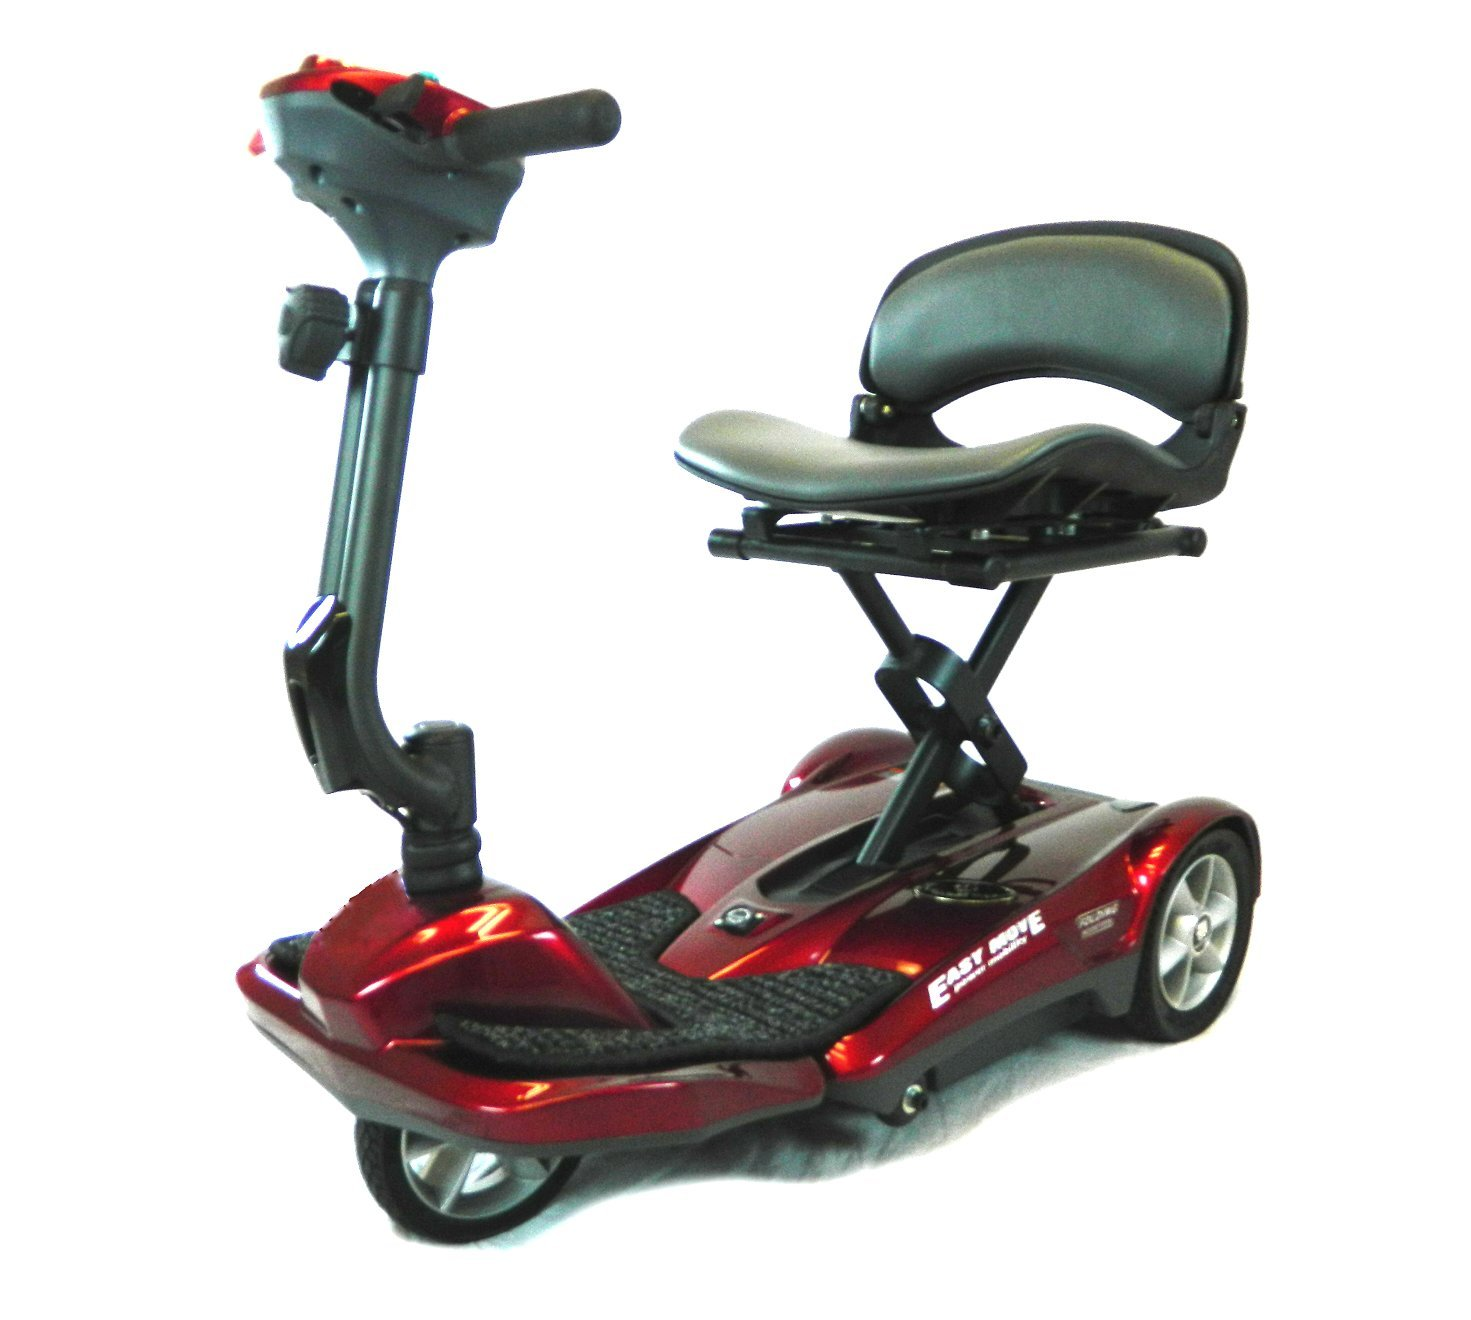 EvRider Easy Move Mobility Scooter Remote Automatic Folding, Burgundy by Heartway